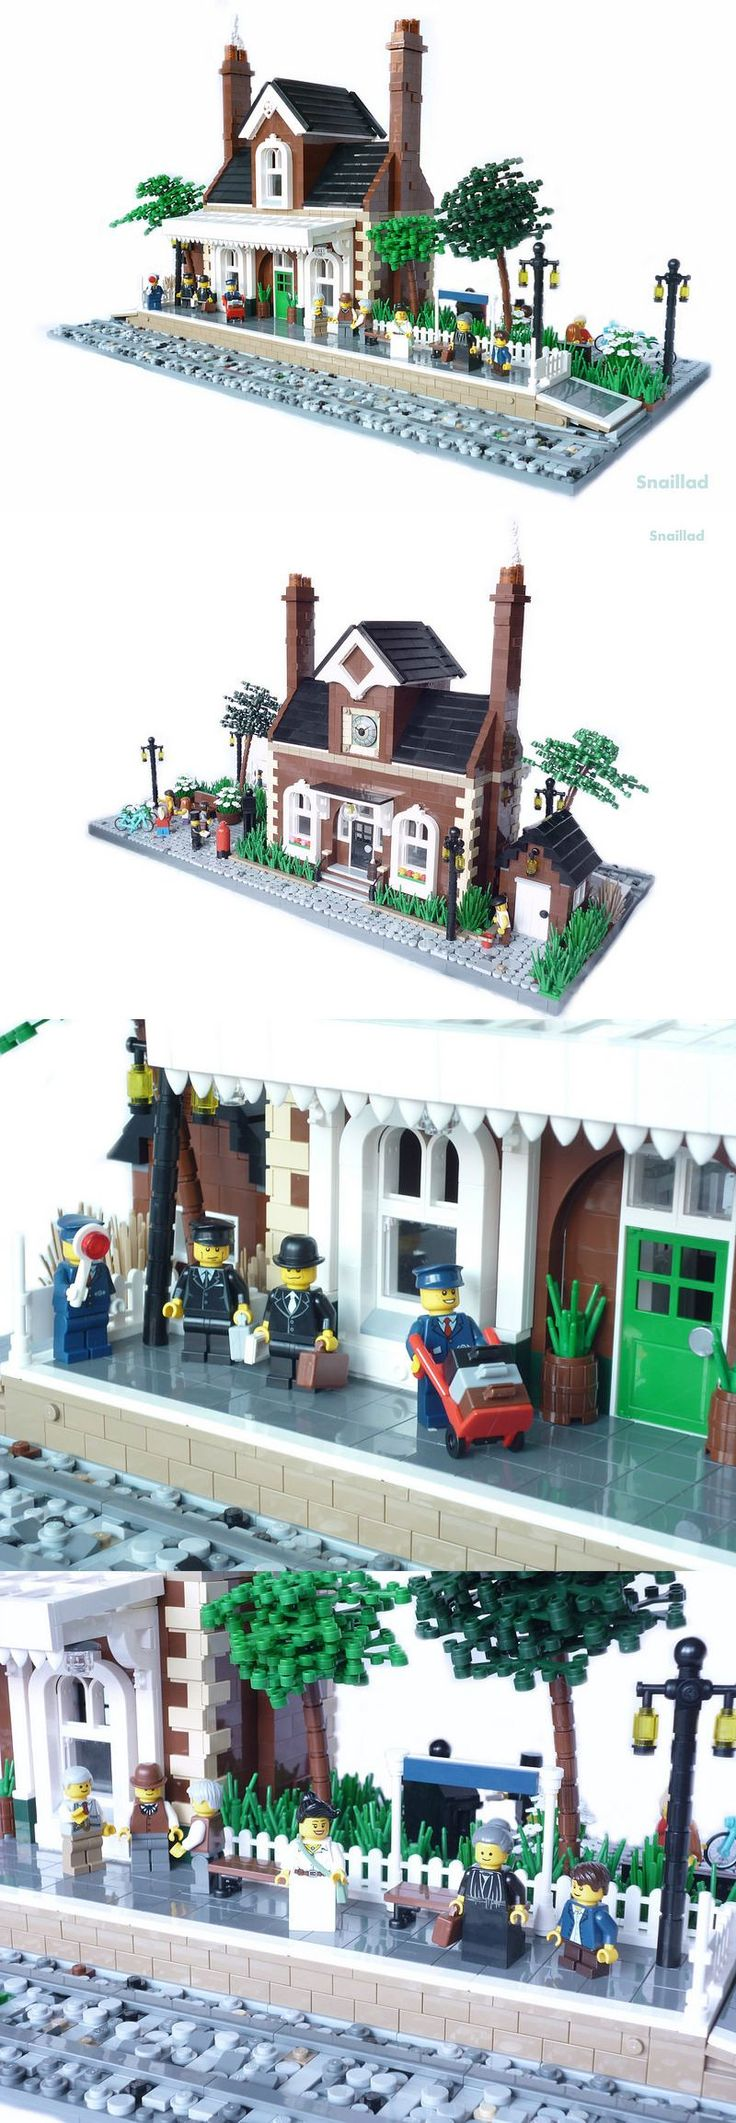 Studdington Station #LEGO #Train #Station